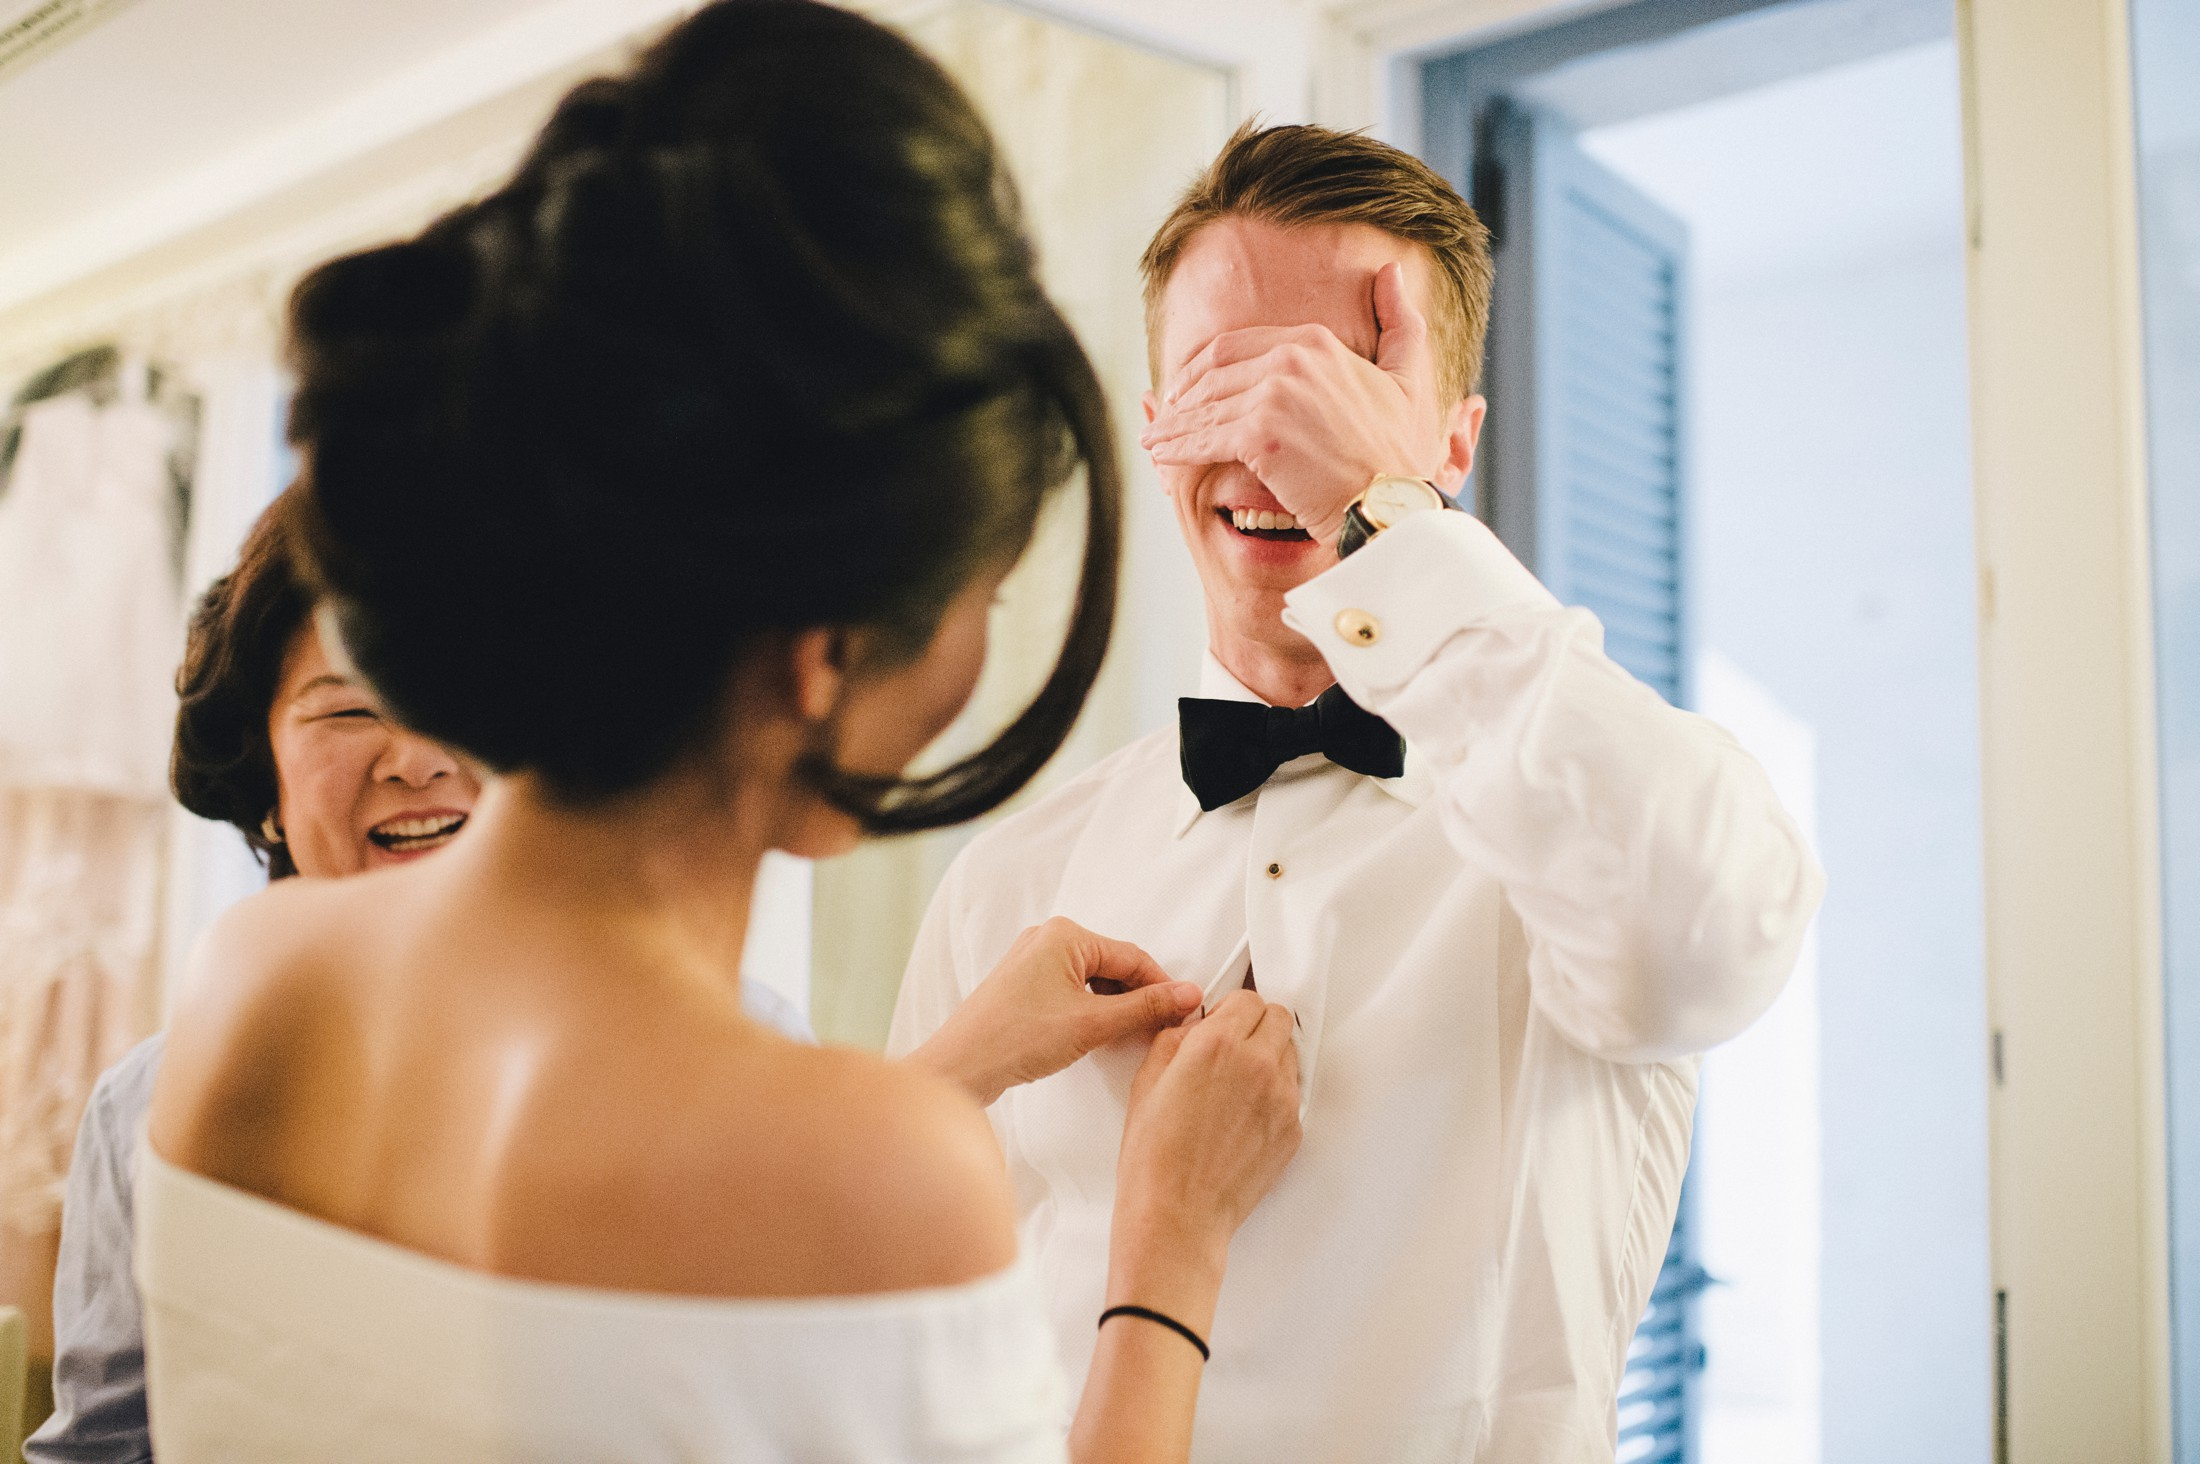 the groom's cover his eyes in order to not see the bride